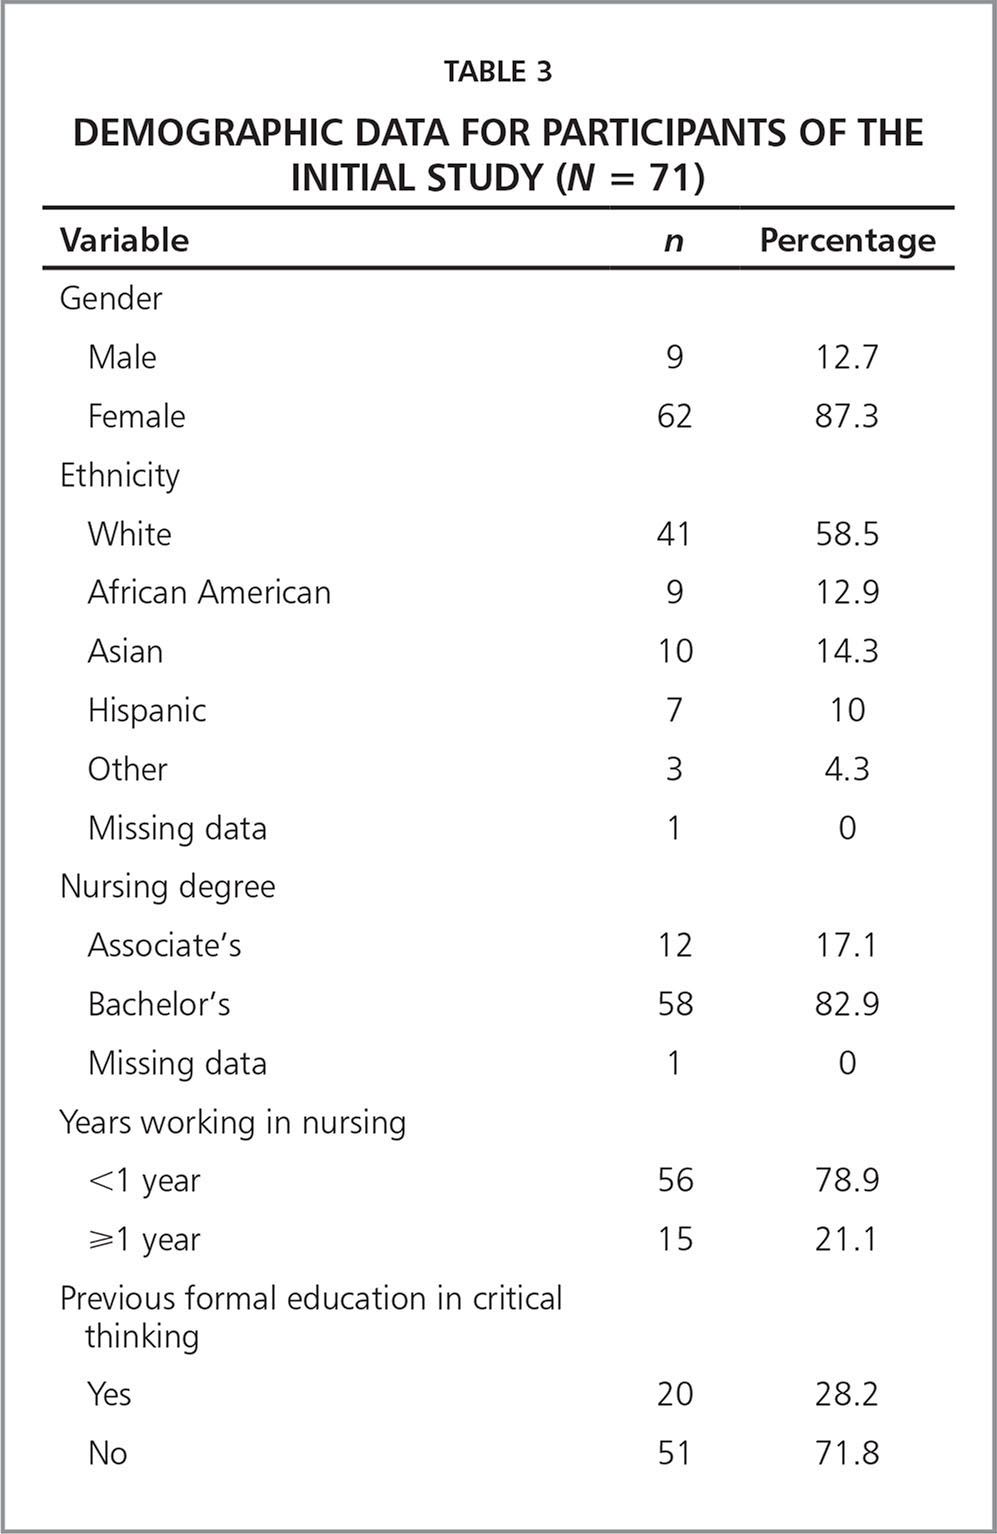 Demographic Data for Participants of the Initial Study (N = 71)